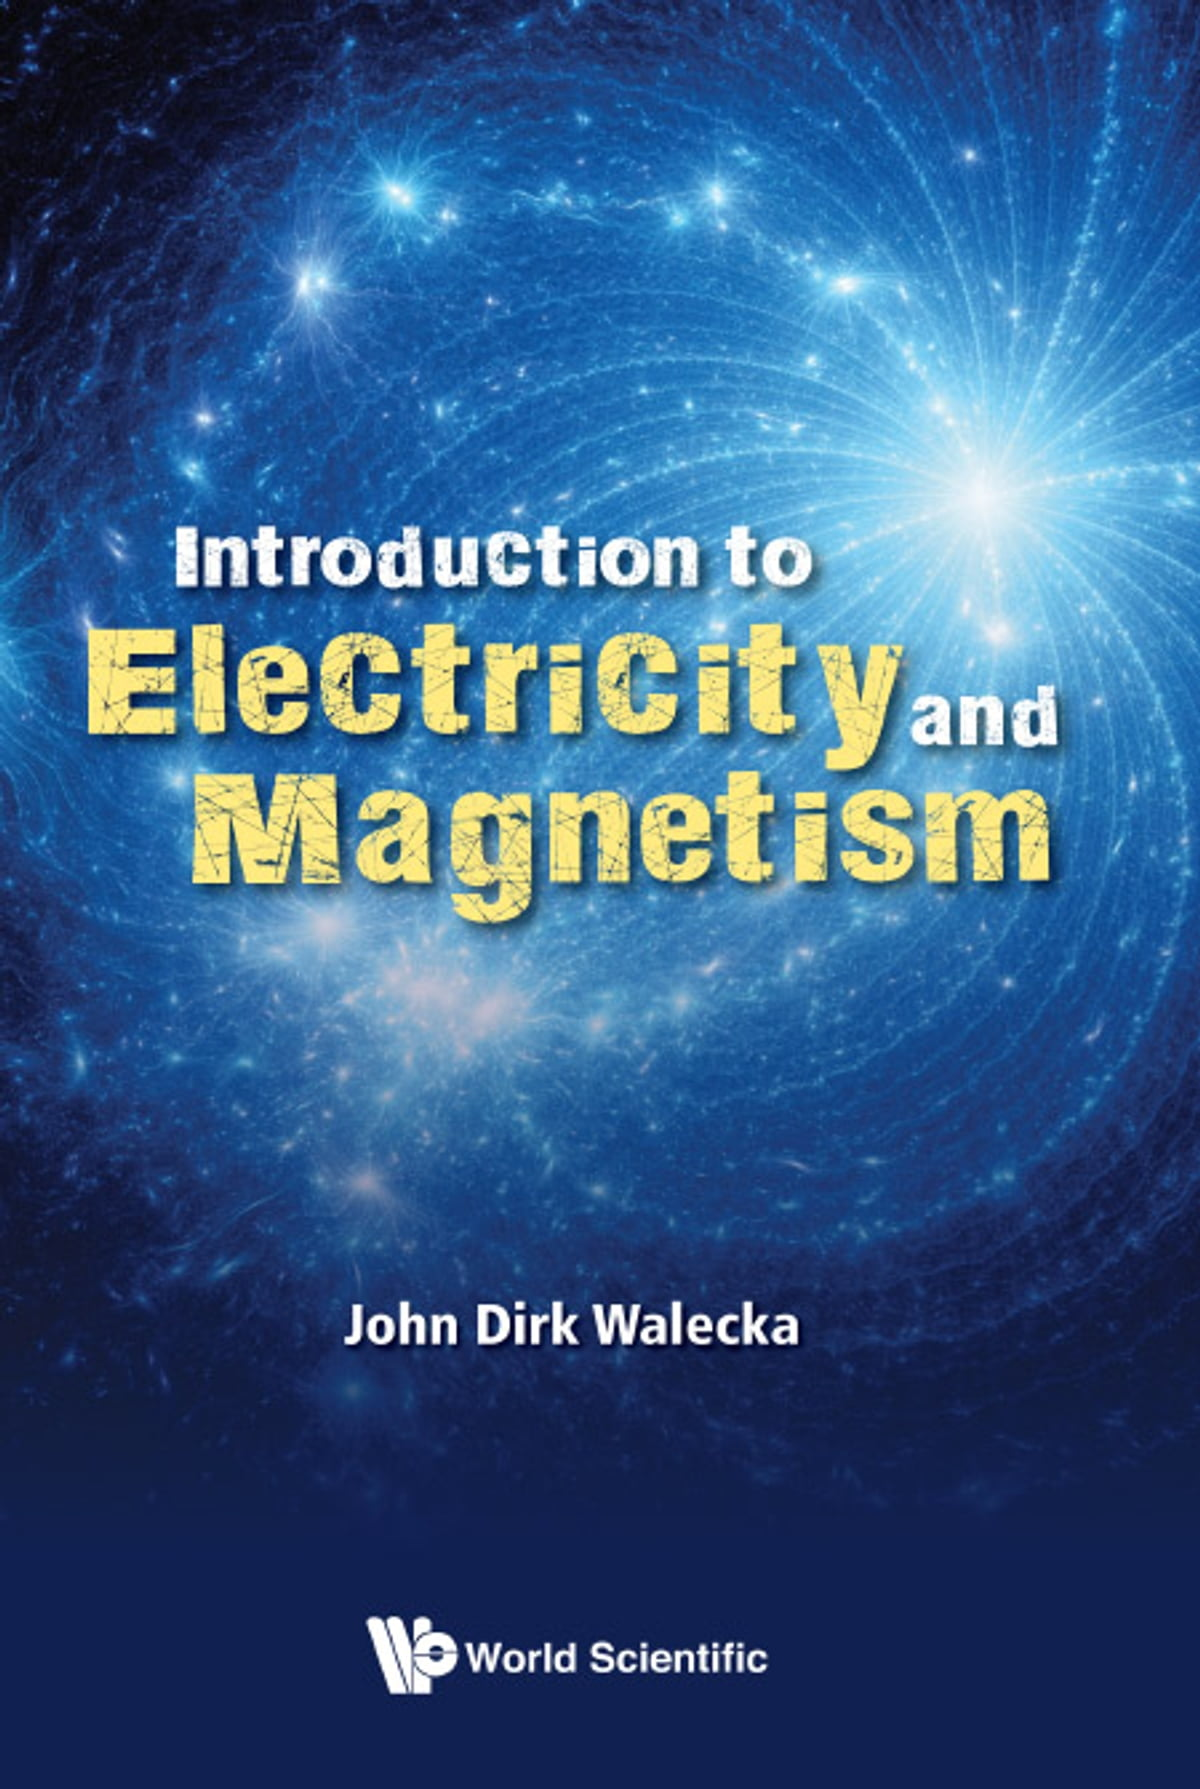 Introduction to Electricity and Magnetism eBook by John Dirk Walecka -  9789813272088 | Rakuten Kobo